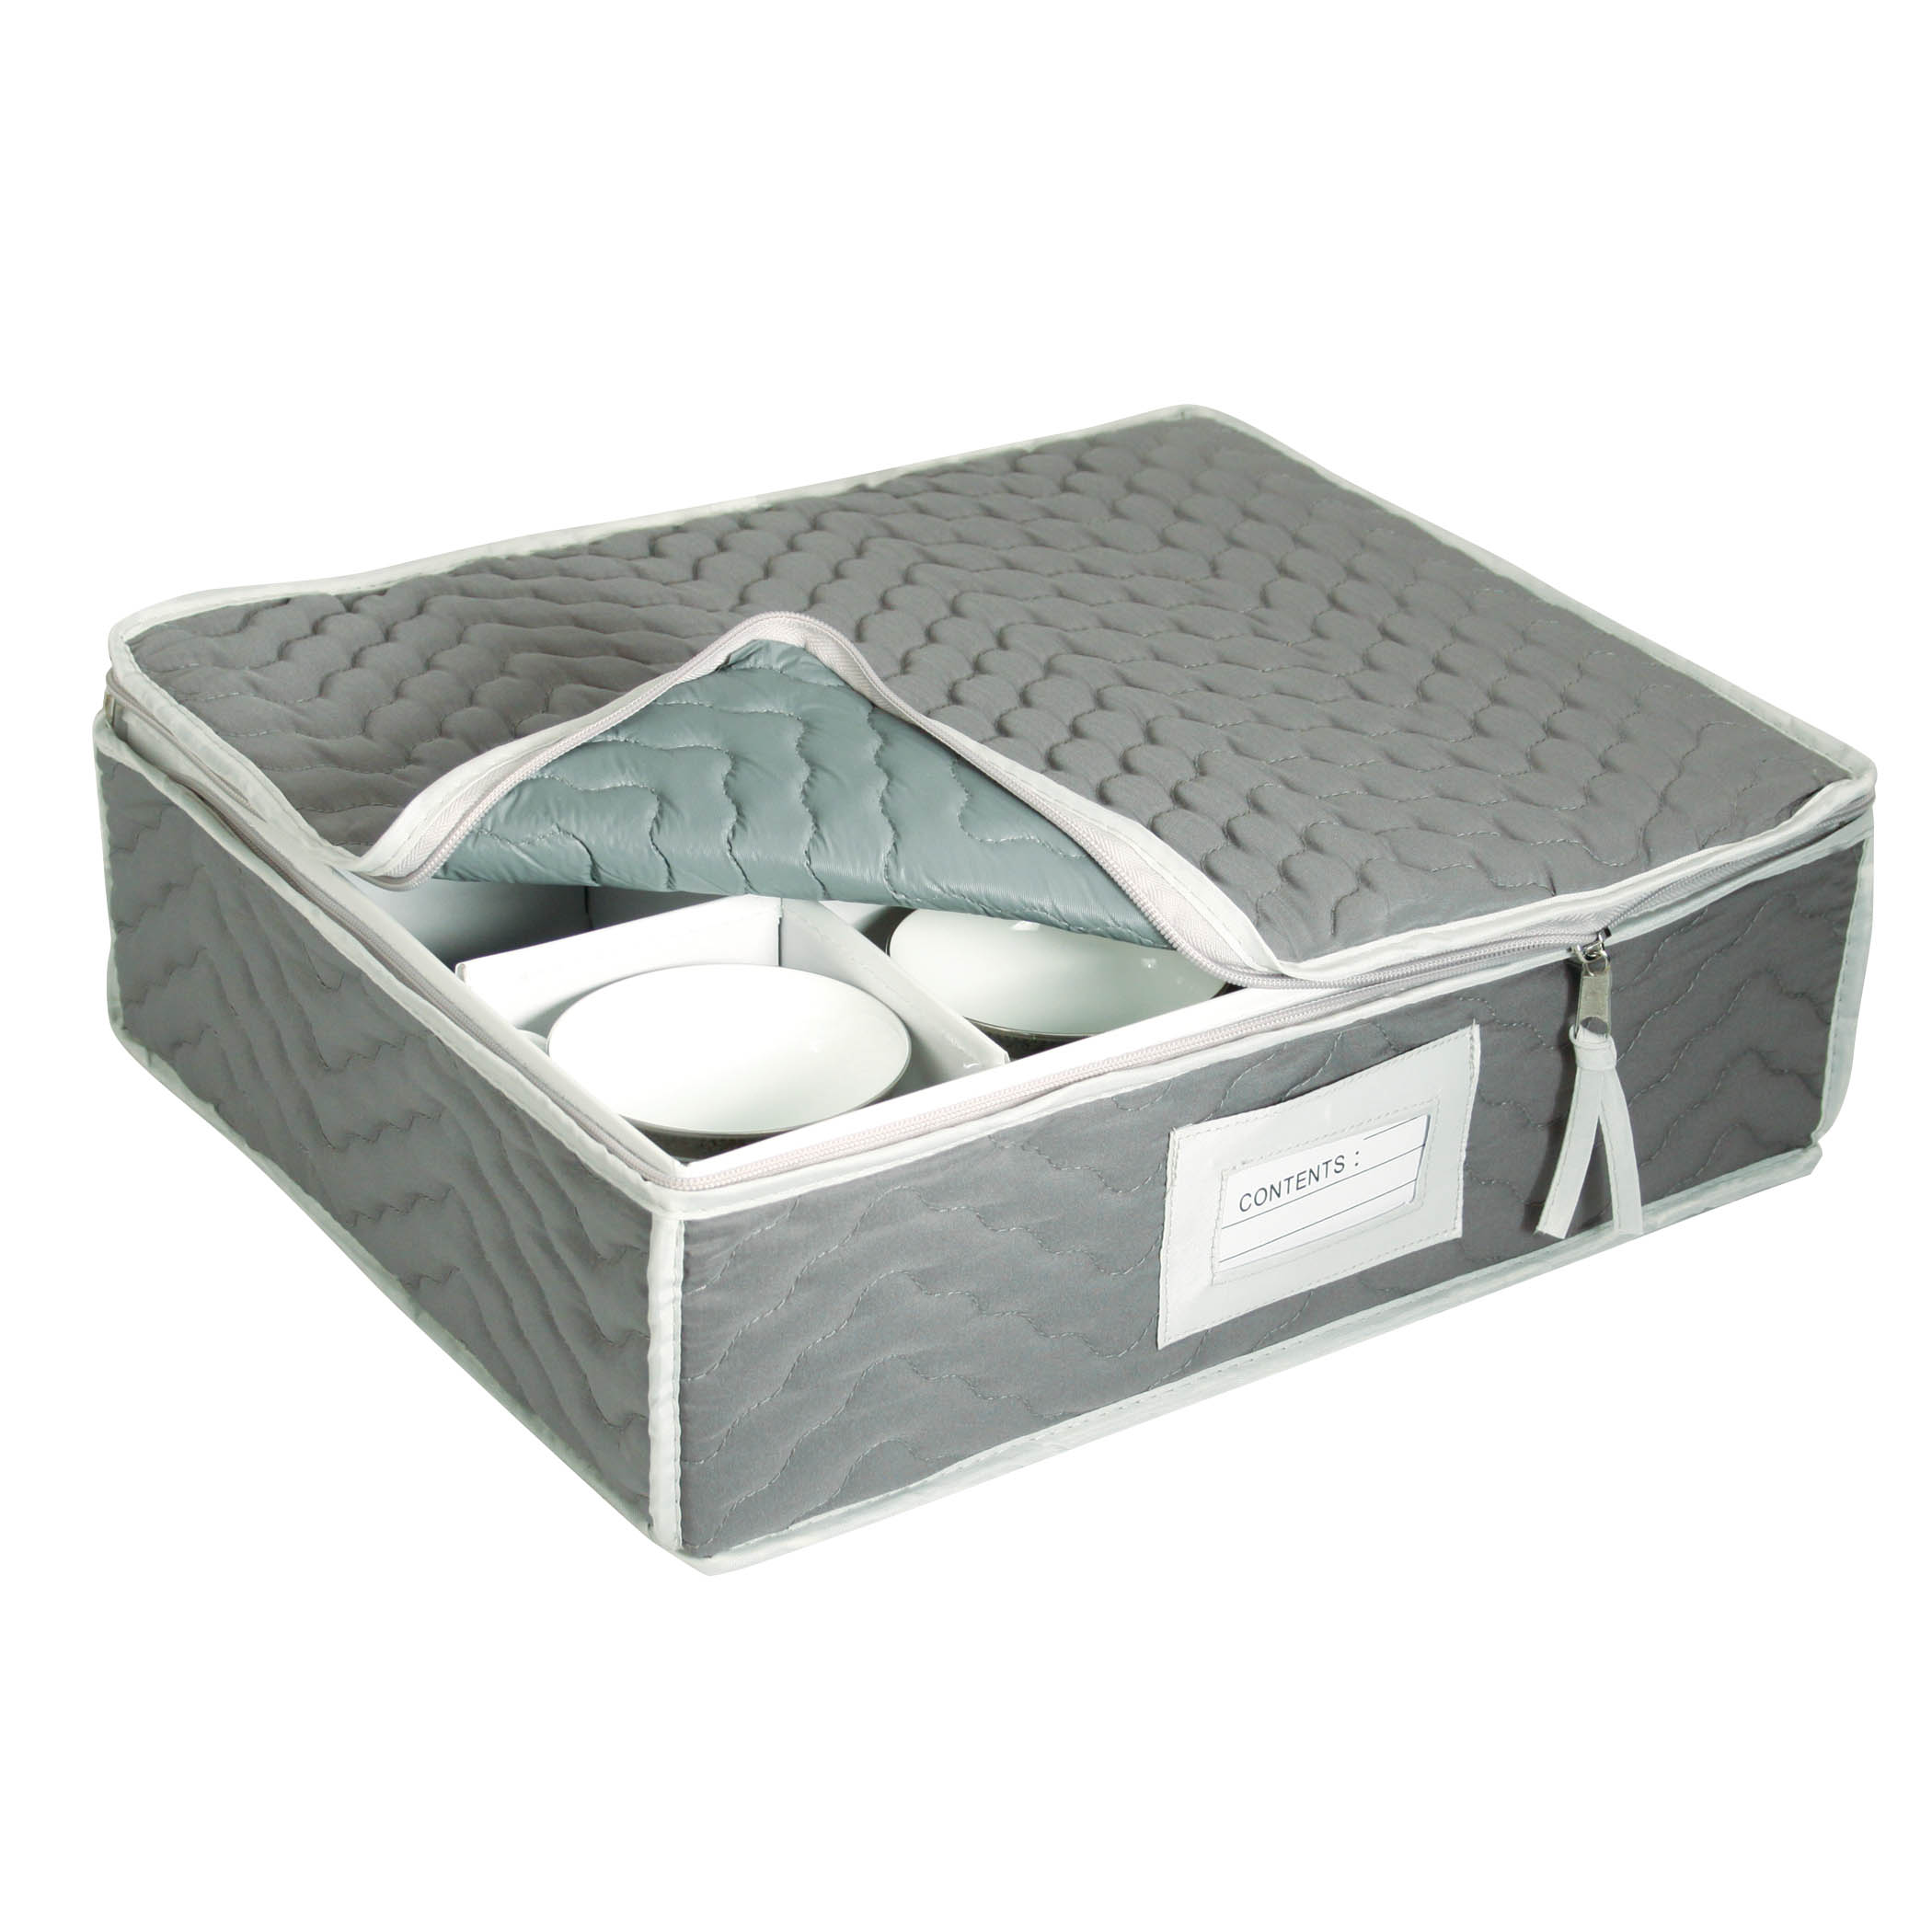 China Cup Storage Chest Deluxe Quilted Microfiber (13H x 15.5W x 5D) (Grey, 2 PACK) by